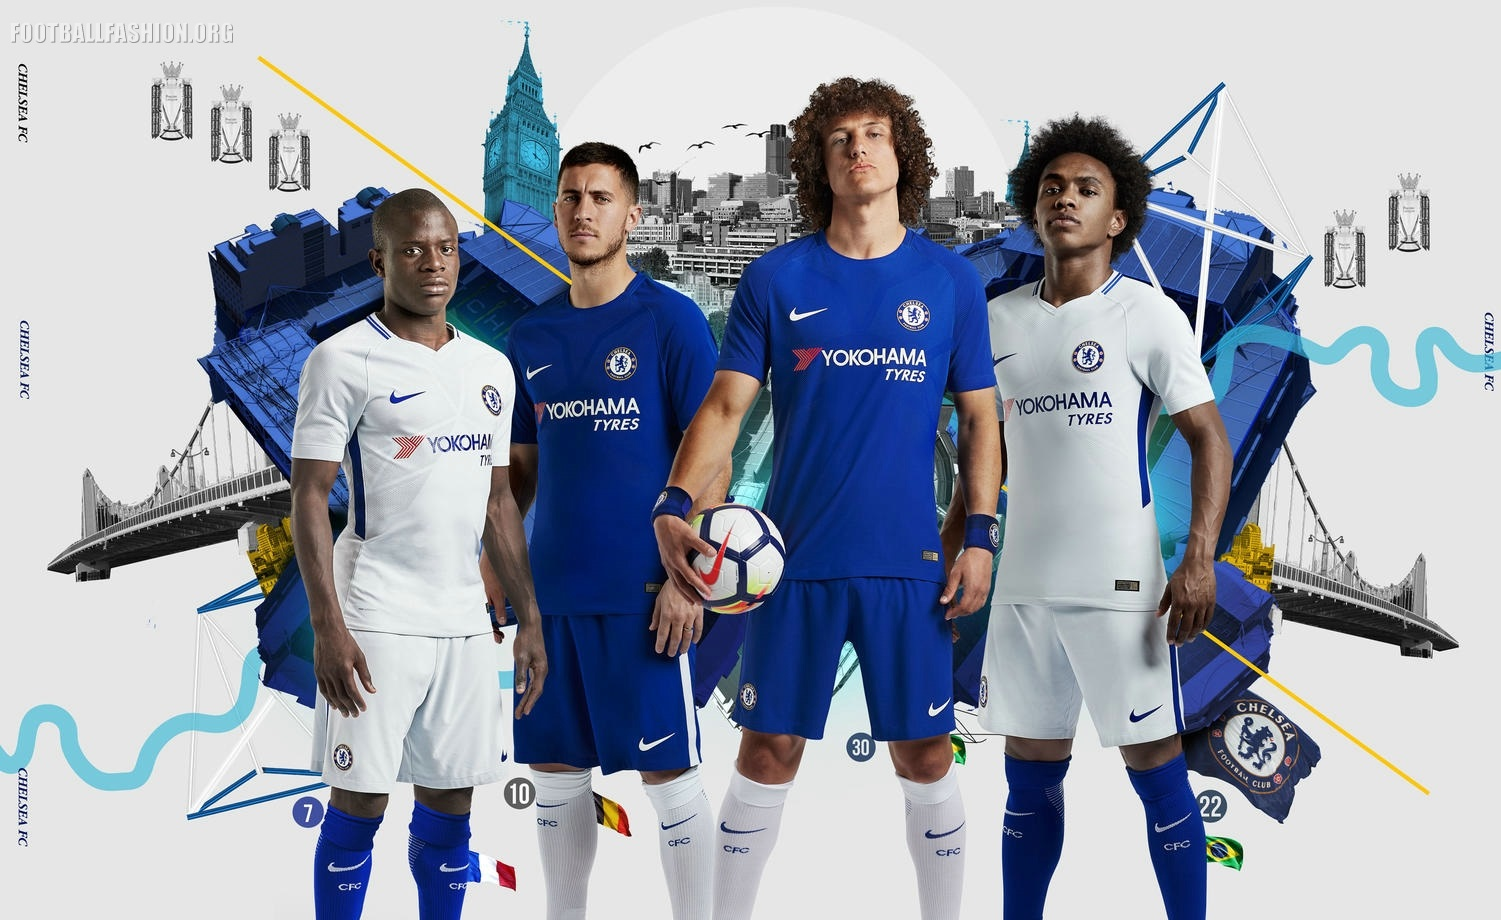 0ded683fd Chelsea FC 2017 18 Nike Home and Away Kits – FOOTBALL FASHION.ORG